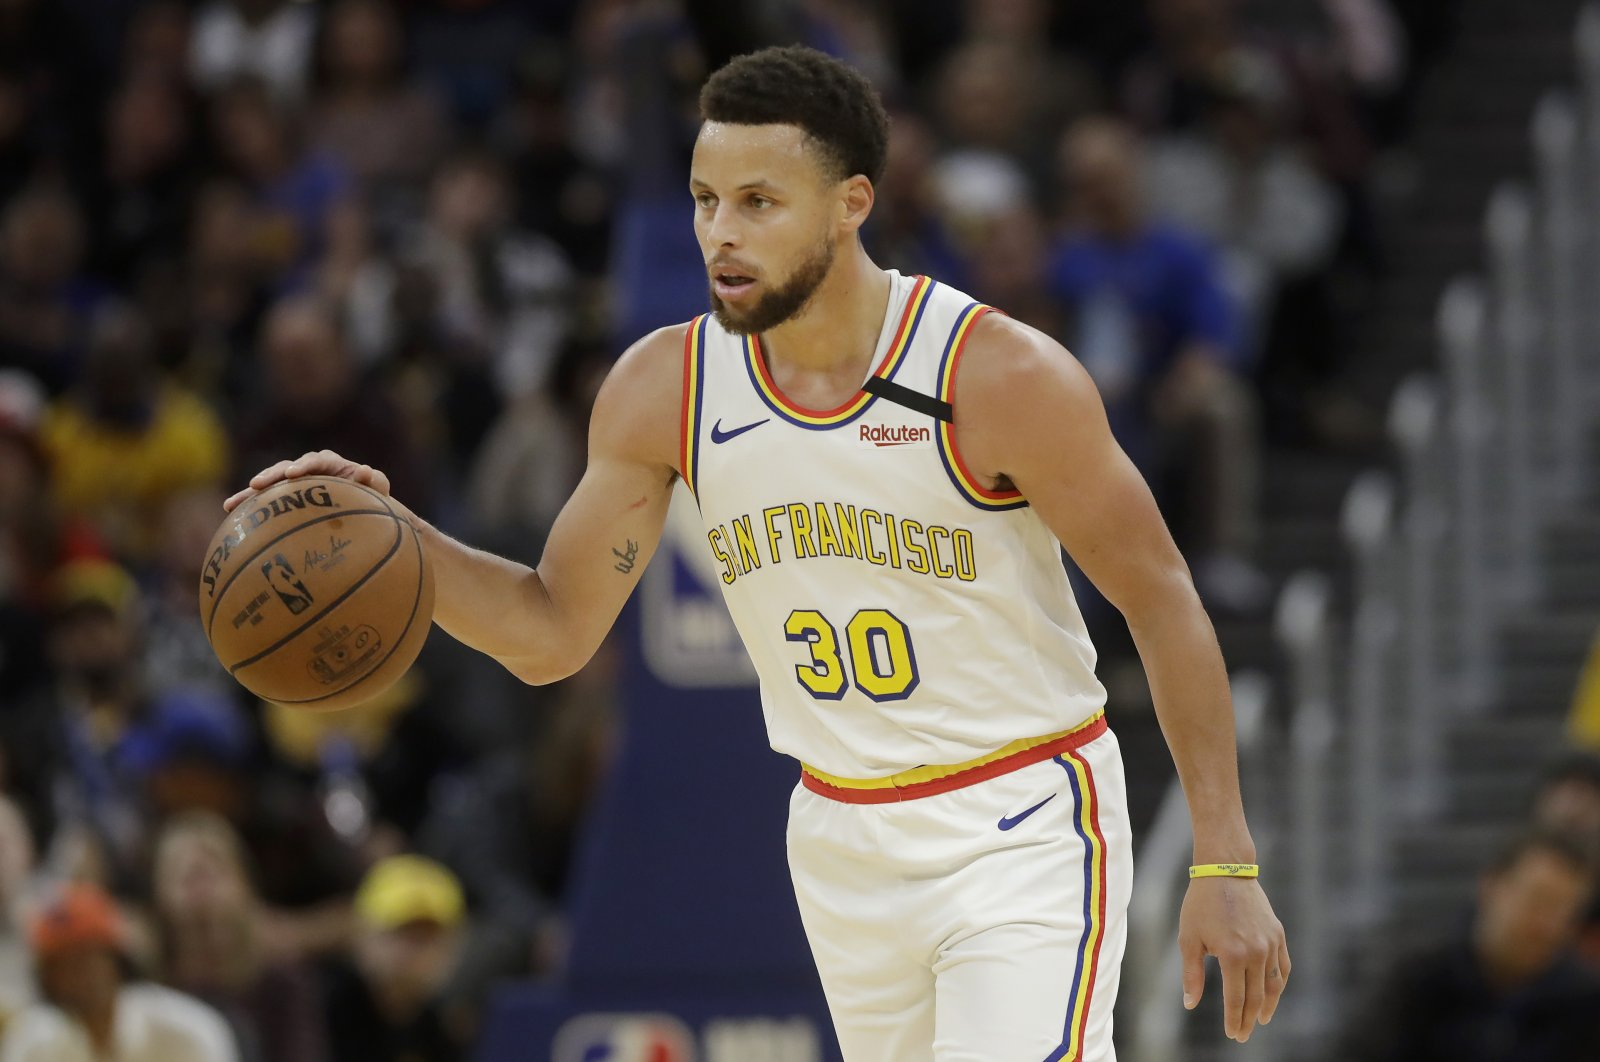 Golden State Warriors guard Stephen Curry (30) dribbles the ball up the court against the Toronto Raptors during the second half of an NBA basketball game in San Francisco, Thursday, March 5, 2020. (AP Photo)